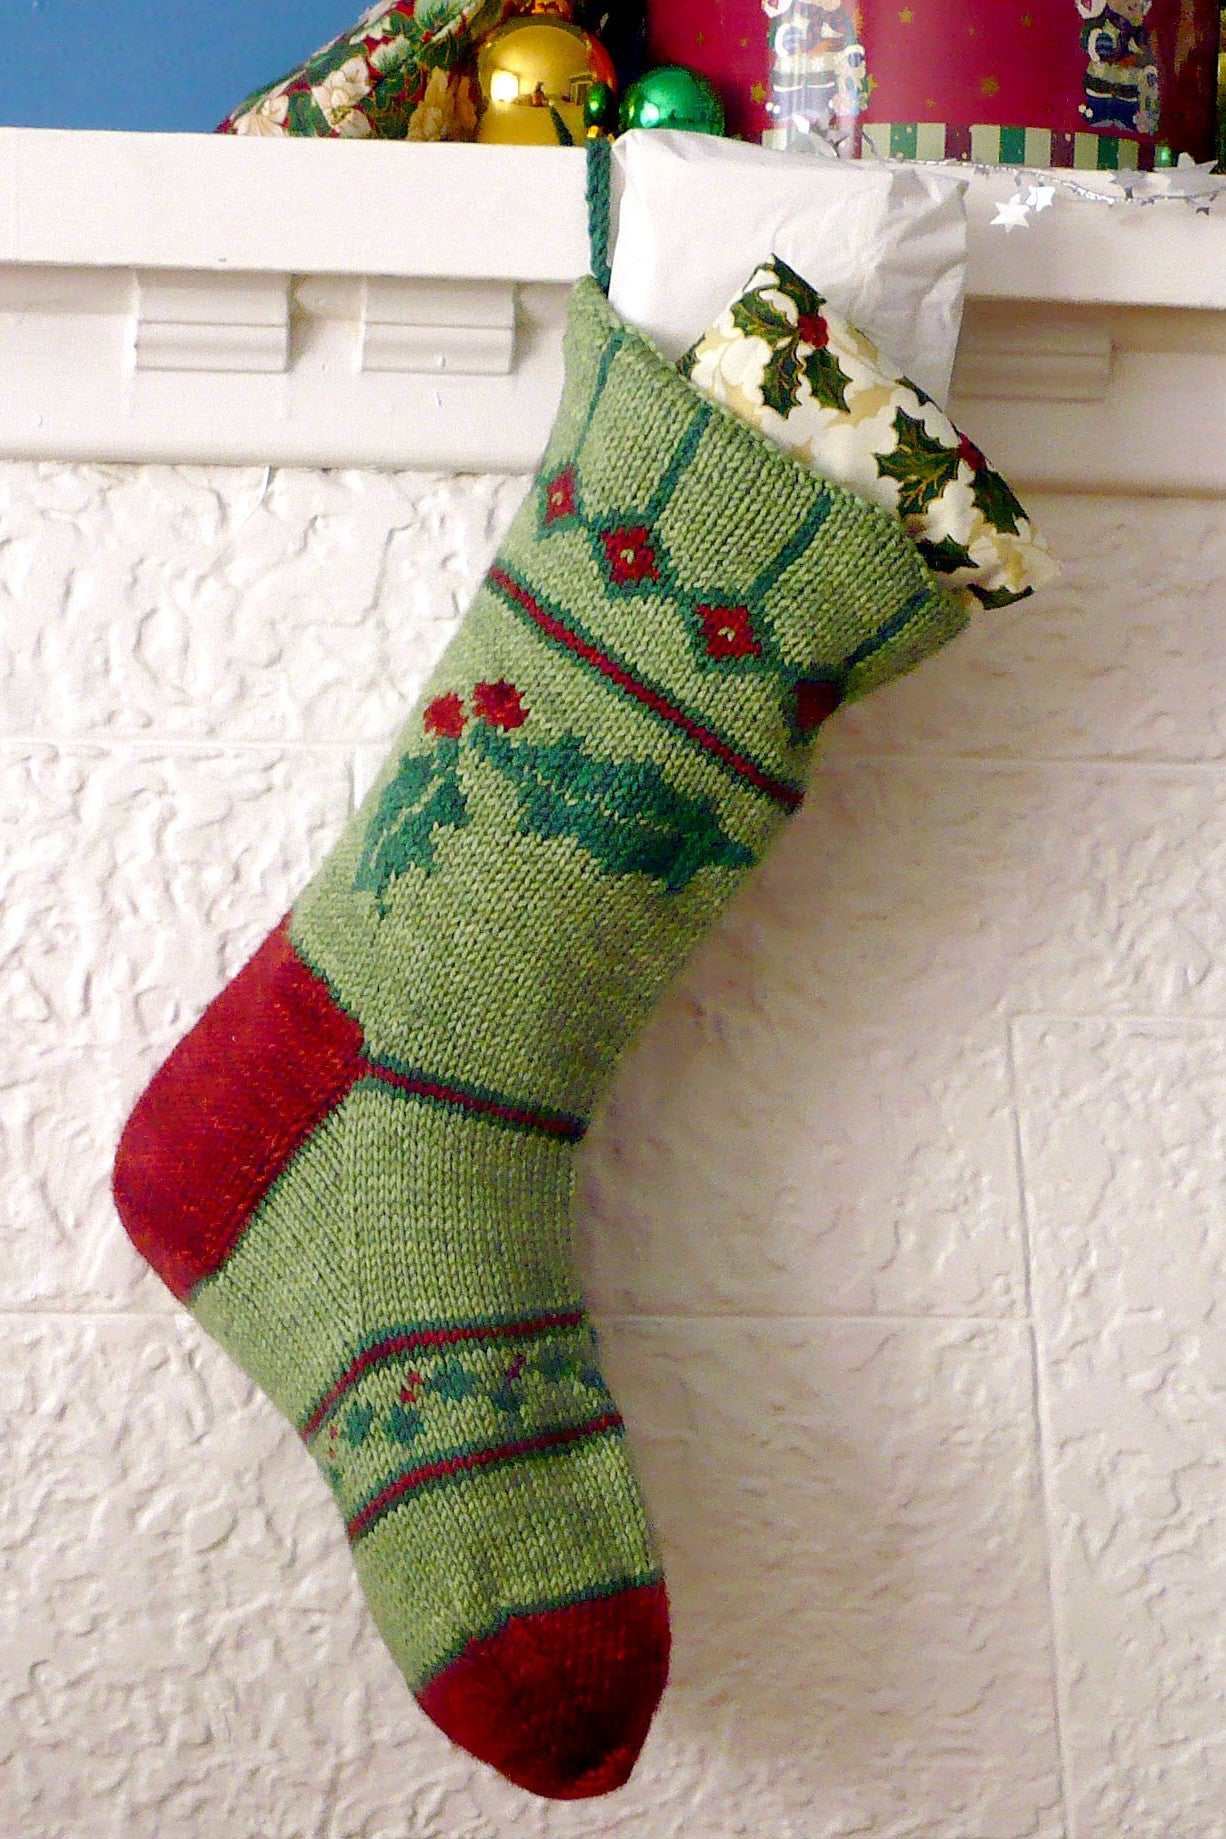 Holly Christmas Stocking knitting pattern